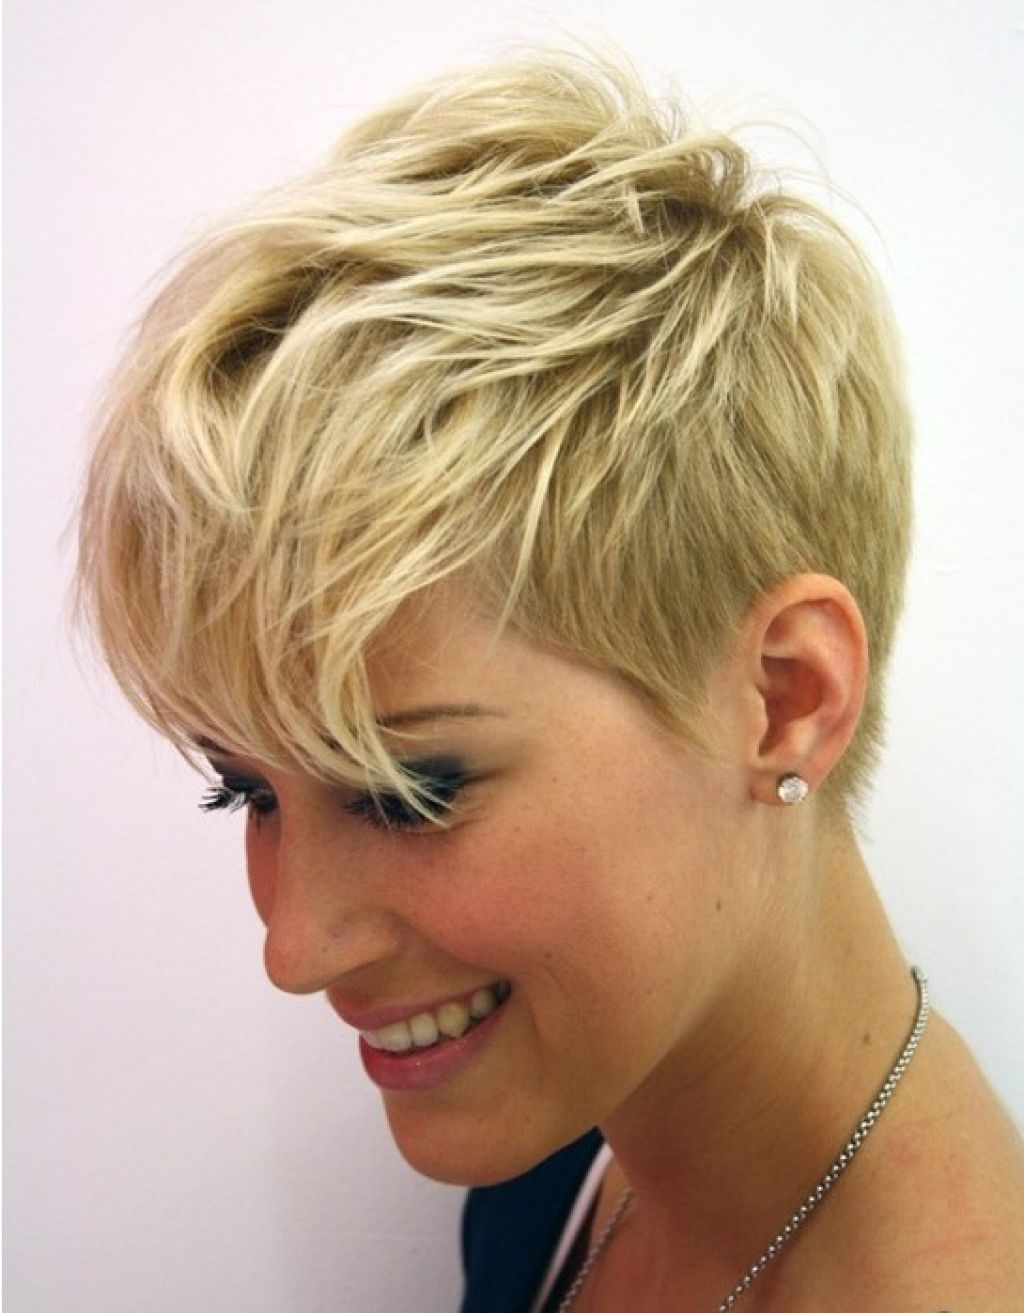 Pixie Hairstyles For Diamond Shaped Faces 2017 With Regard To Latest Pixie Hairstyles For Diamond Shaped Face (View 7 of 15)